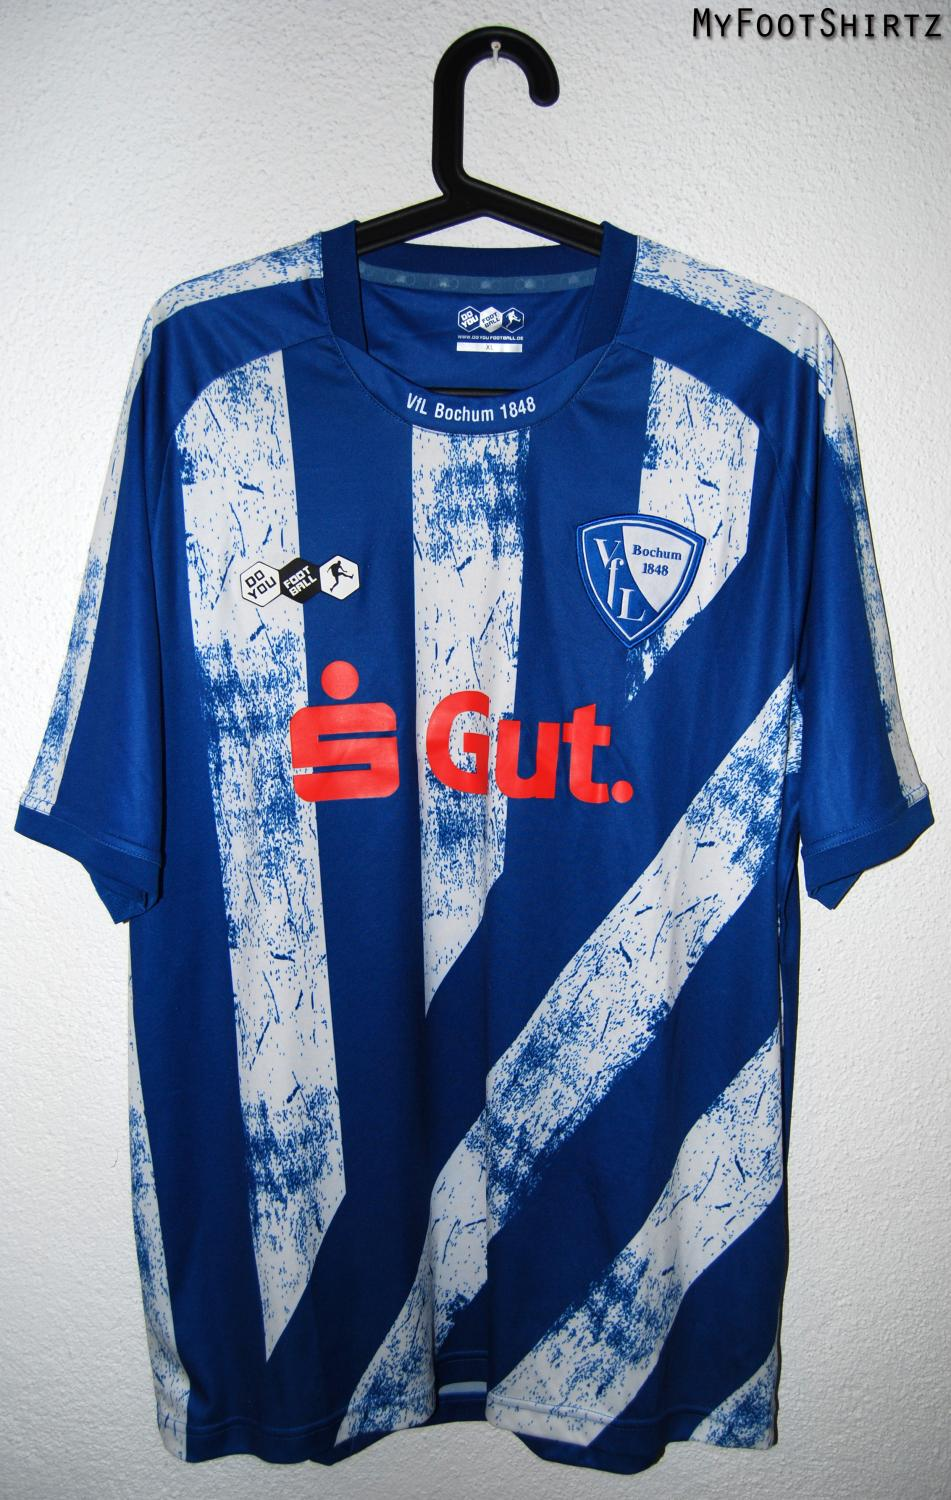 Details about 1995 1996 VFL BOCHUM REEBOK HOME FOOTBALL SHIRT (SIZE XL)